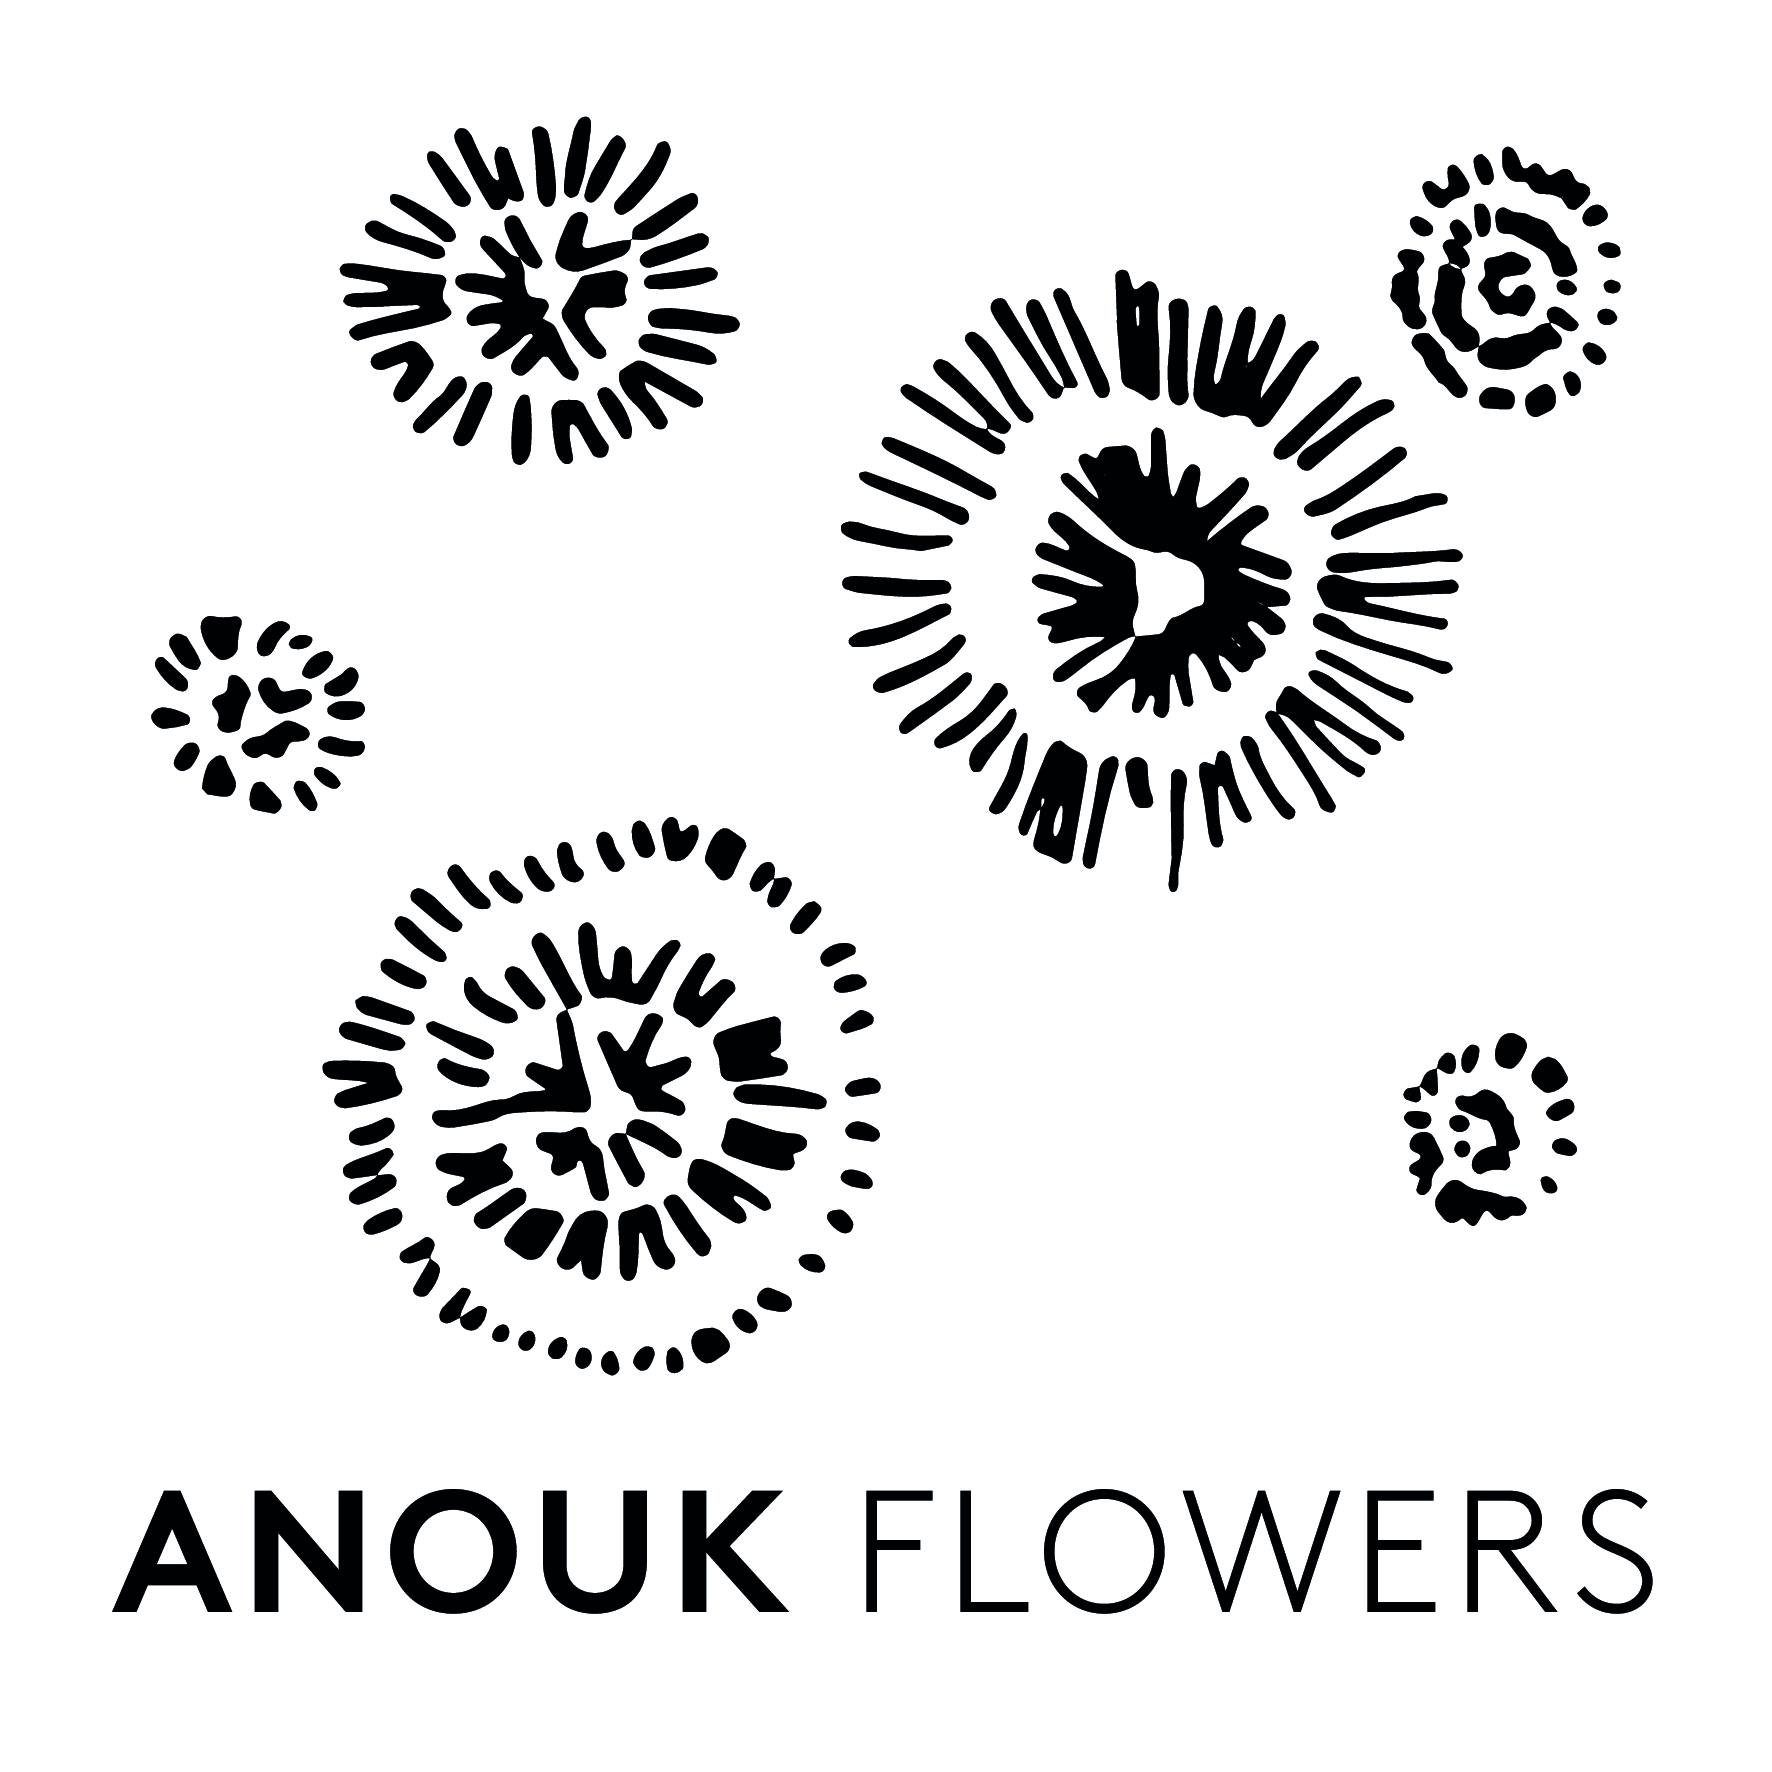 AnoukFlowers-01.png